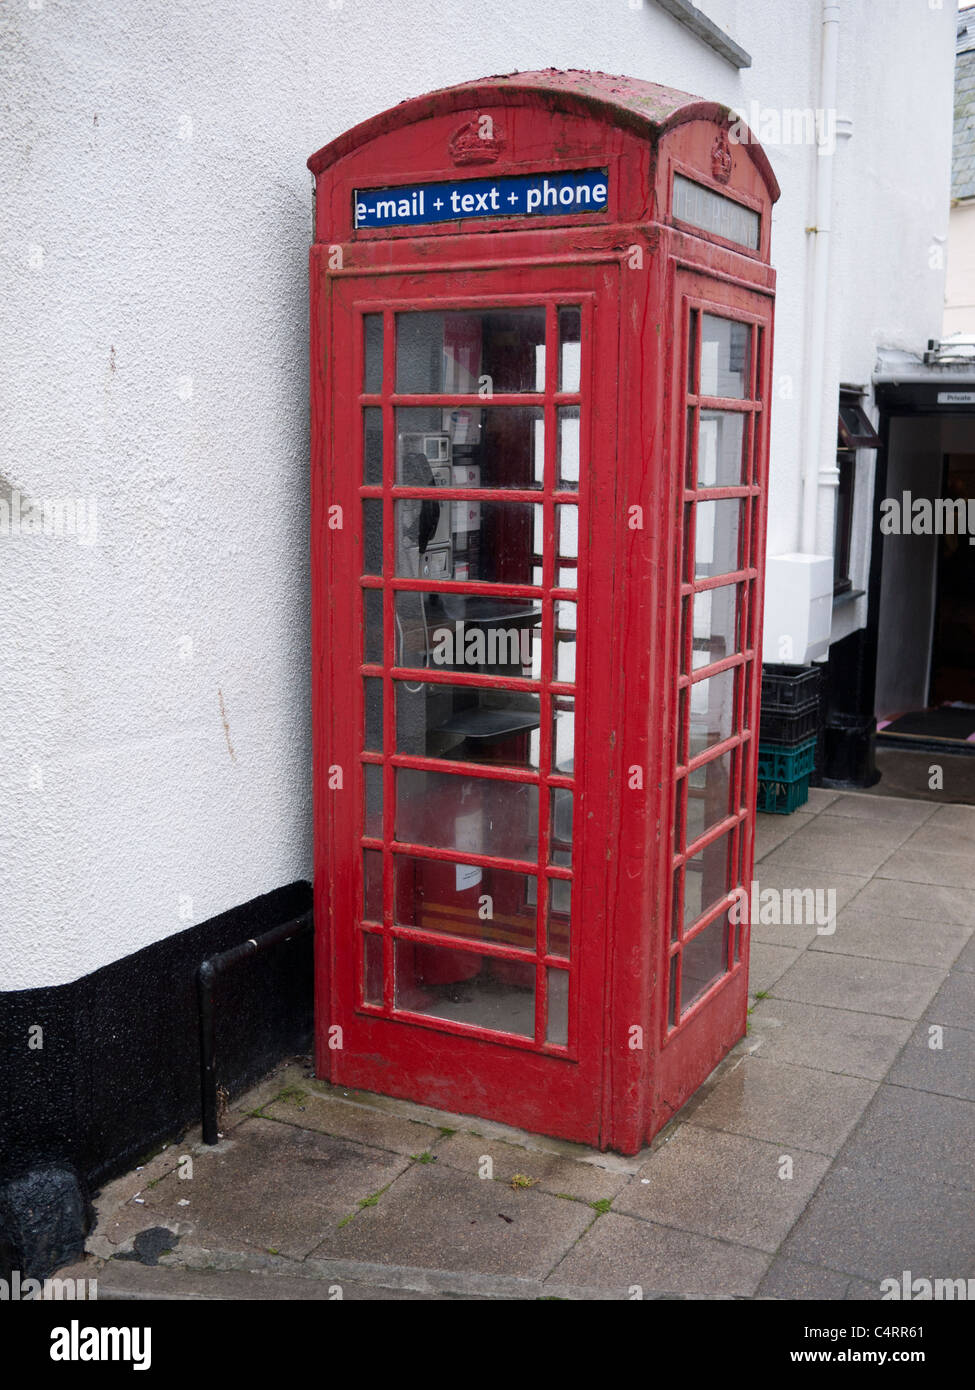 Red traditional English Telephone box in Padstow Cornwall with sign for e mail text and phone - Stock Image